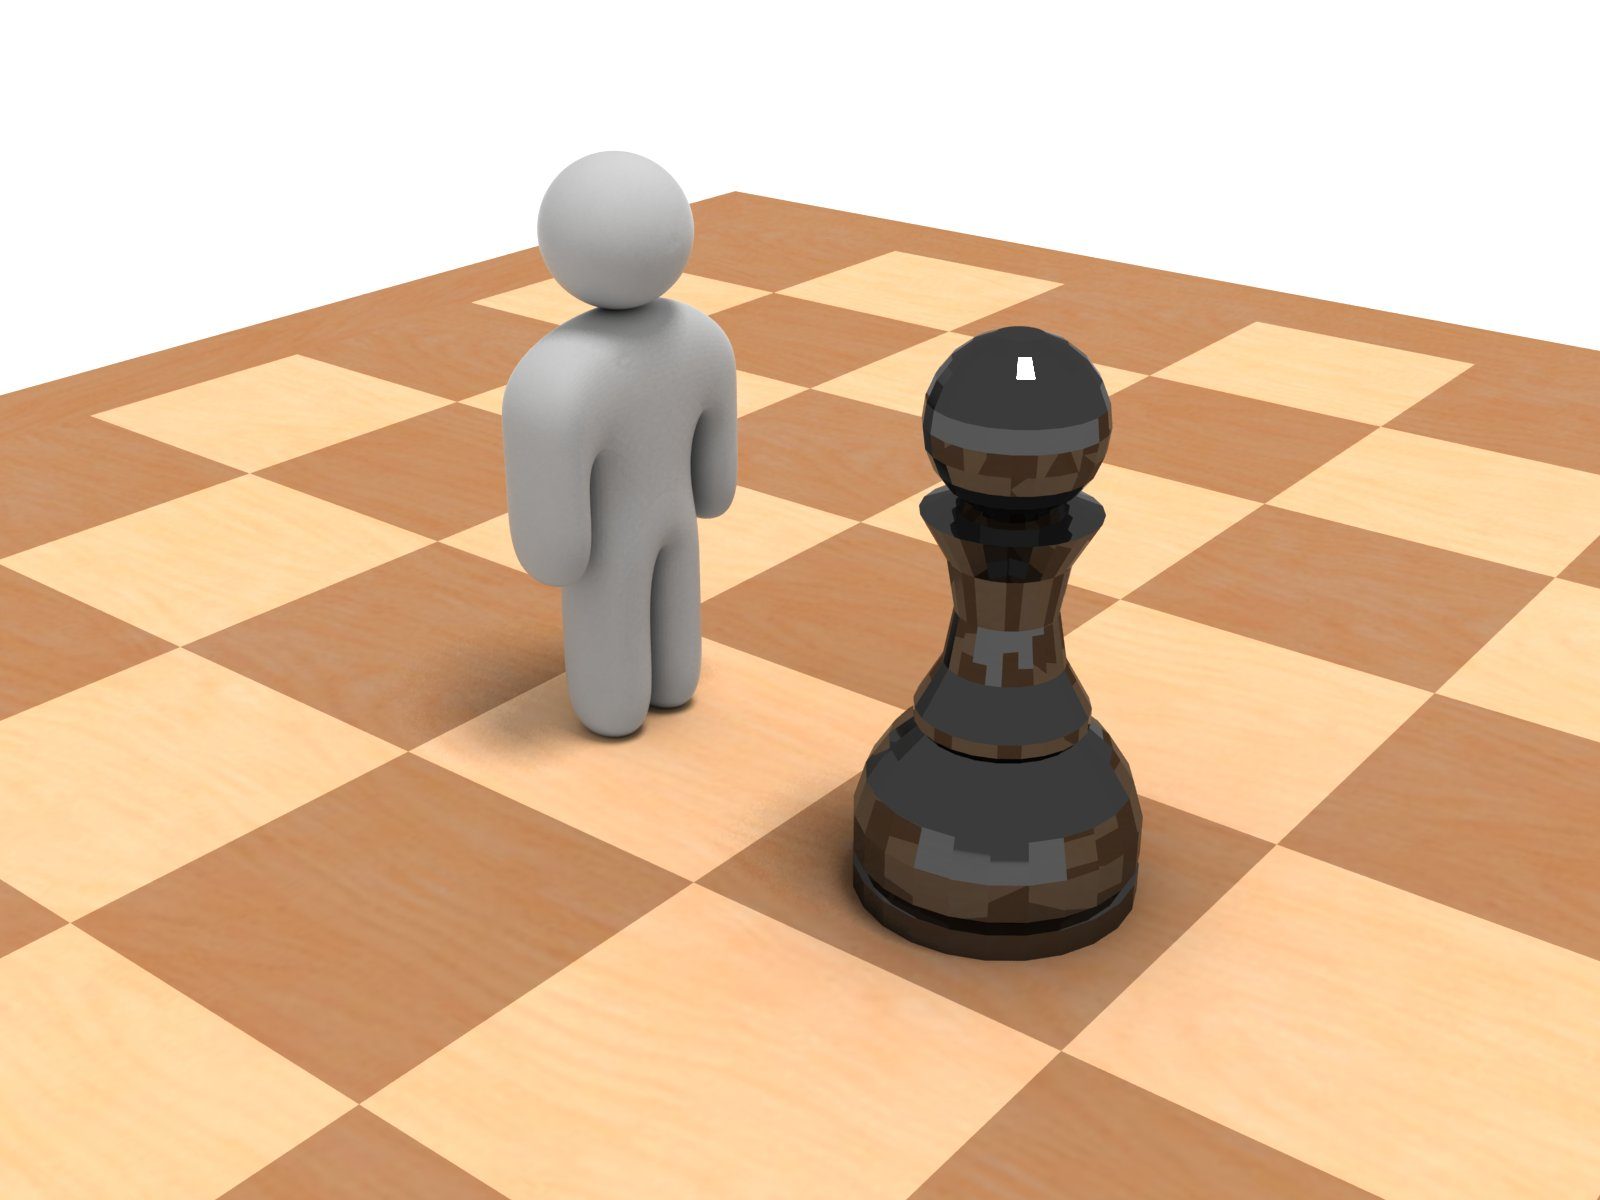 stock image of figure and pawn on chess board